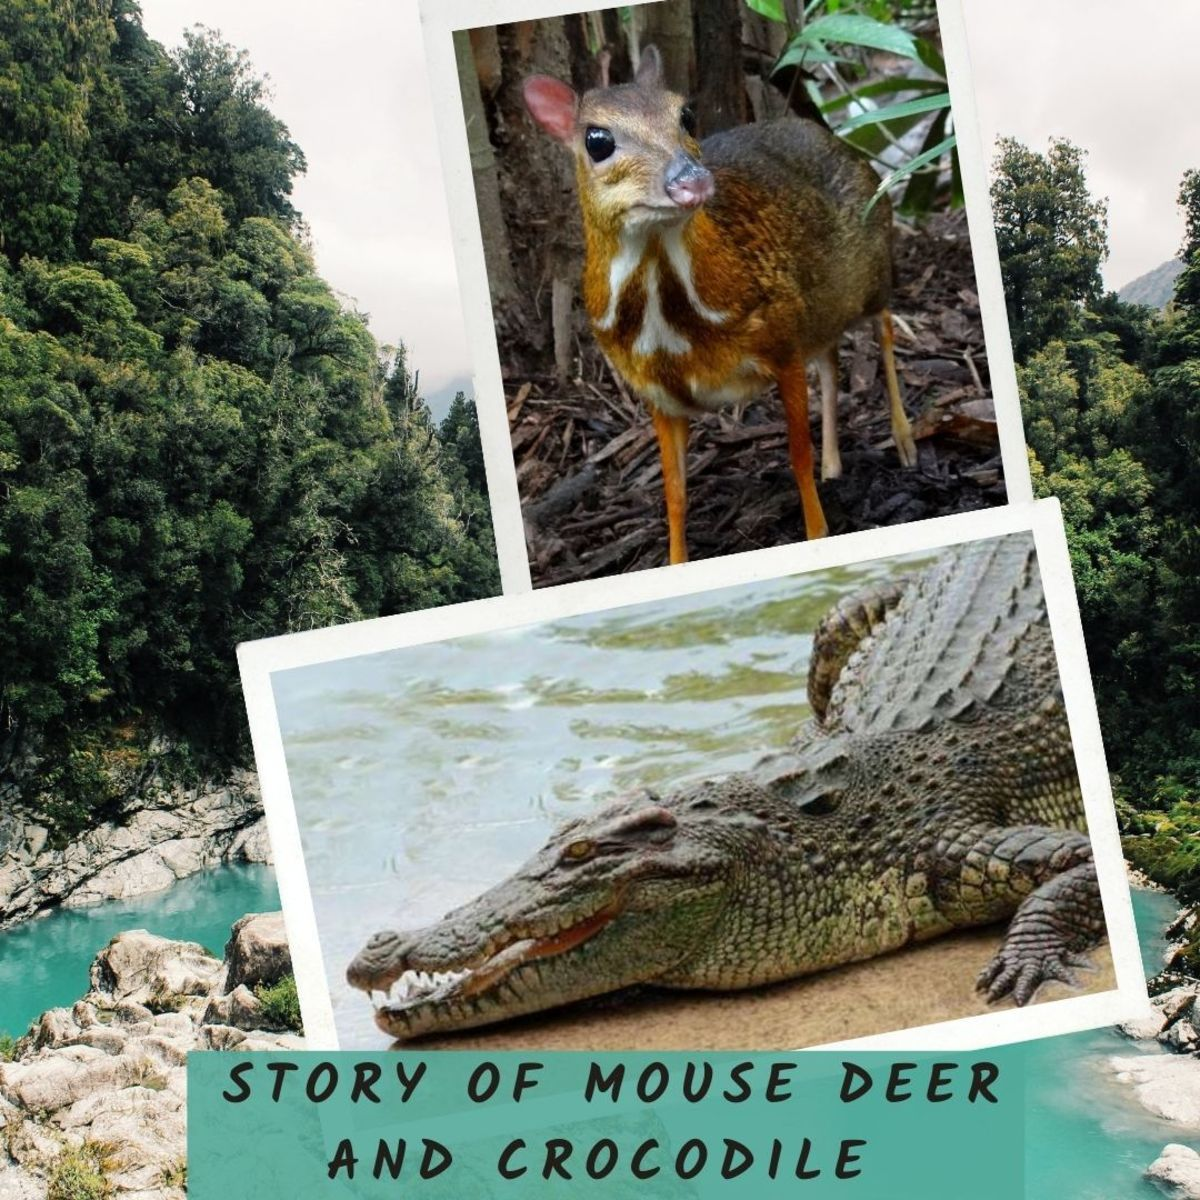 Bedtime Stories for Kids - Story of Mouse Deer And Crocodile